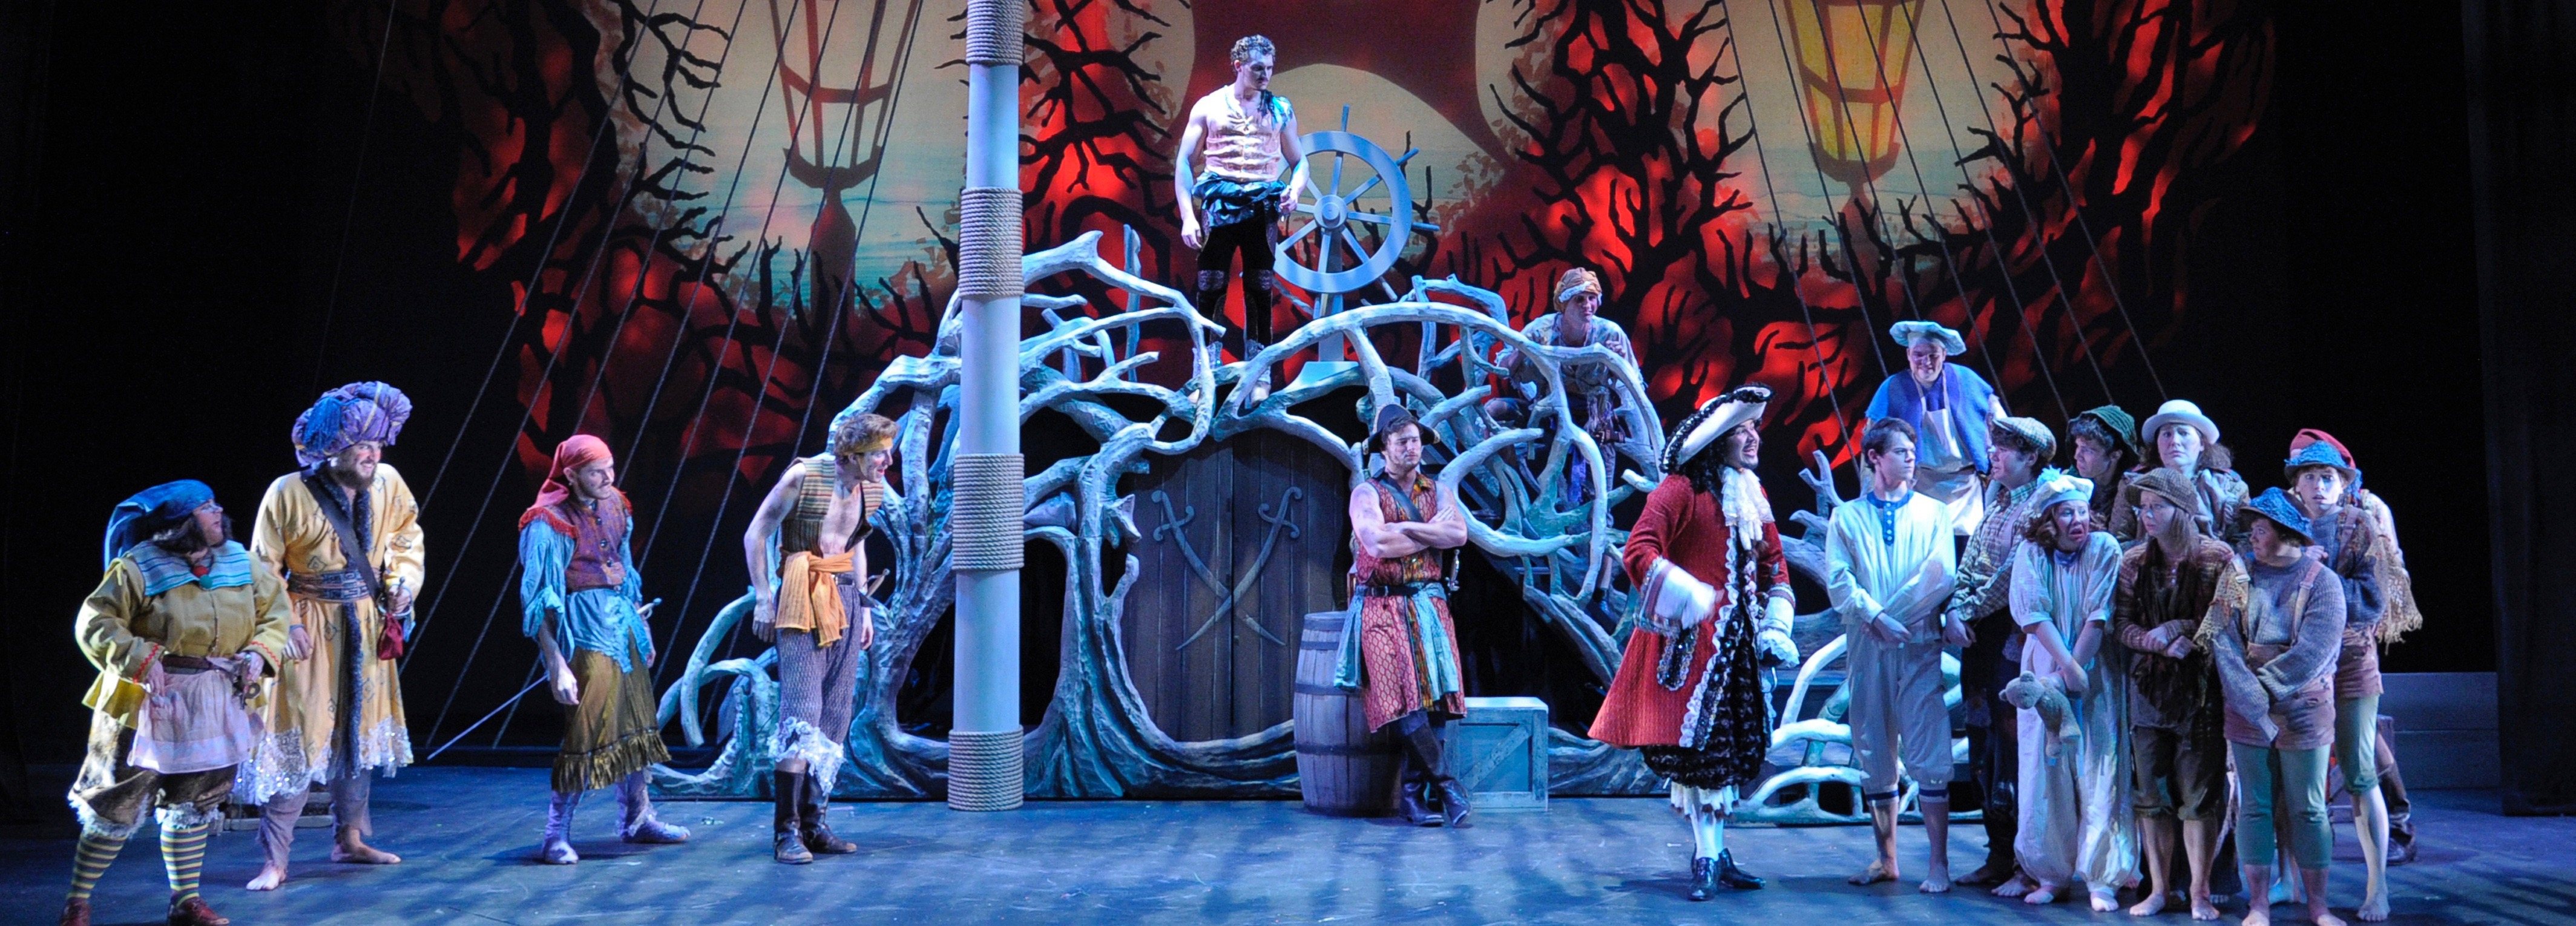 archival photo of Peter Pan production